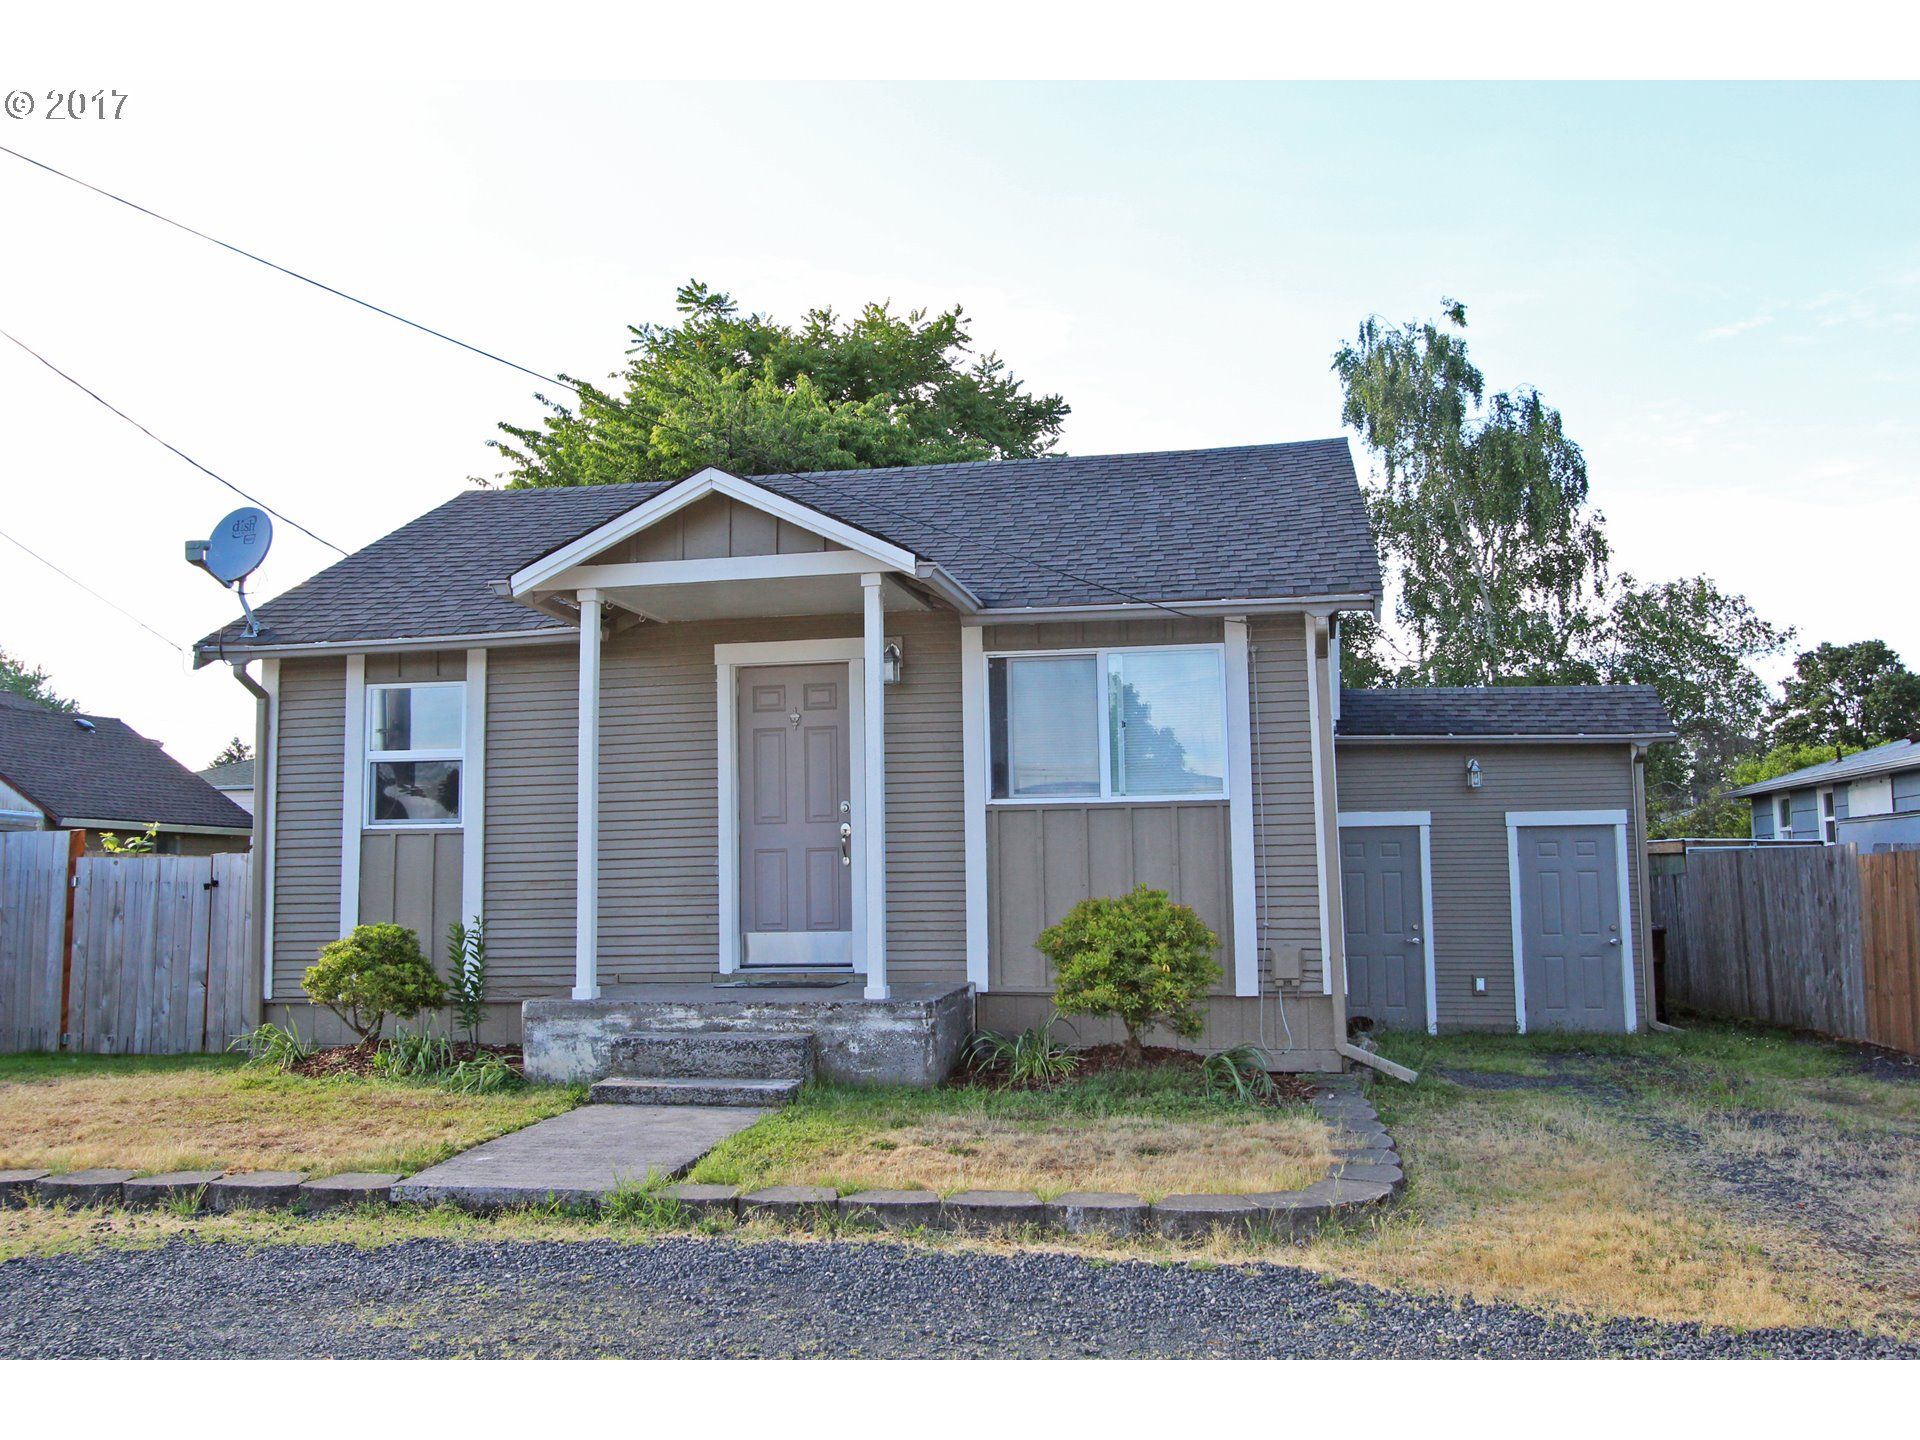 630 TUALATIN ST, St. Helens, OR 97051